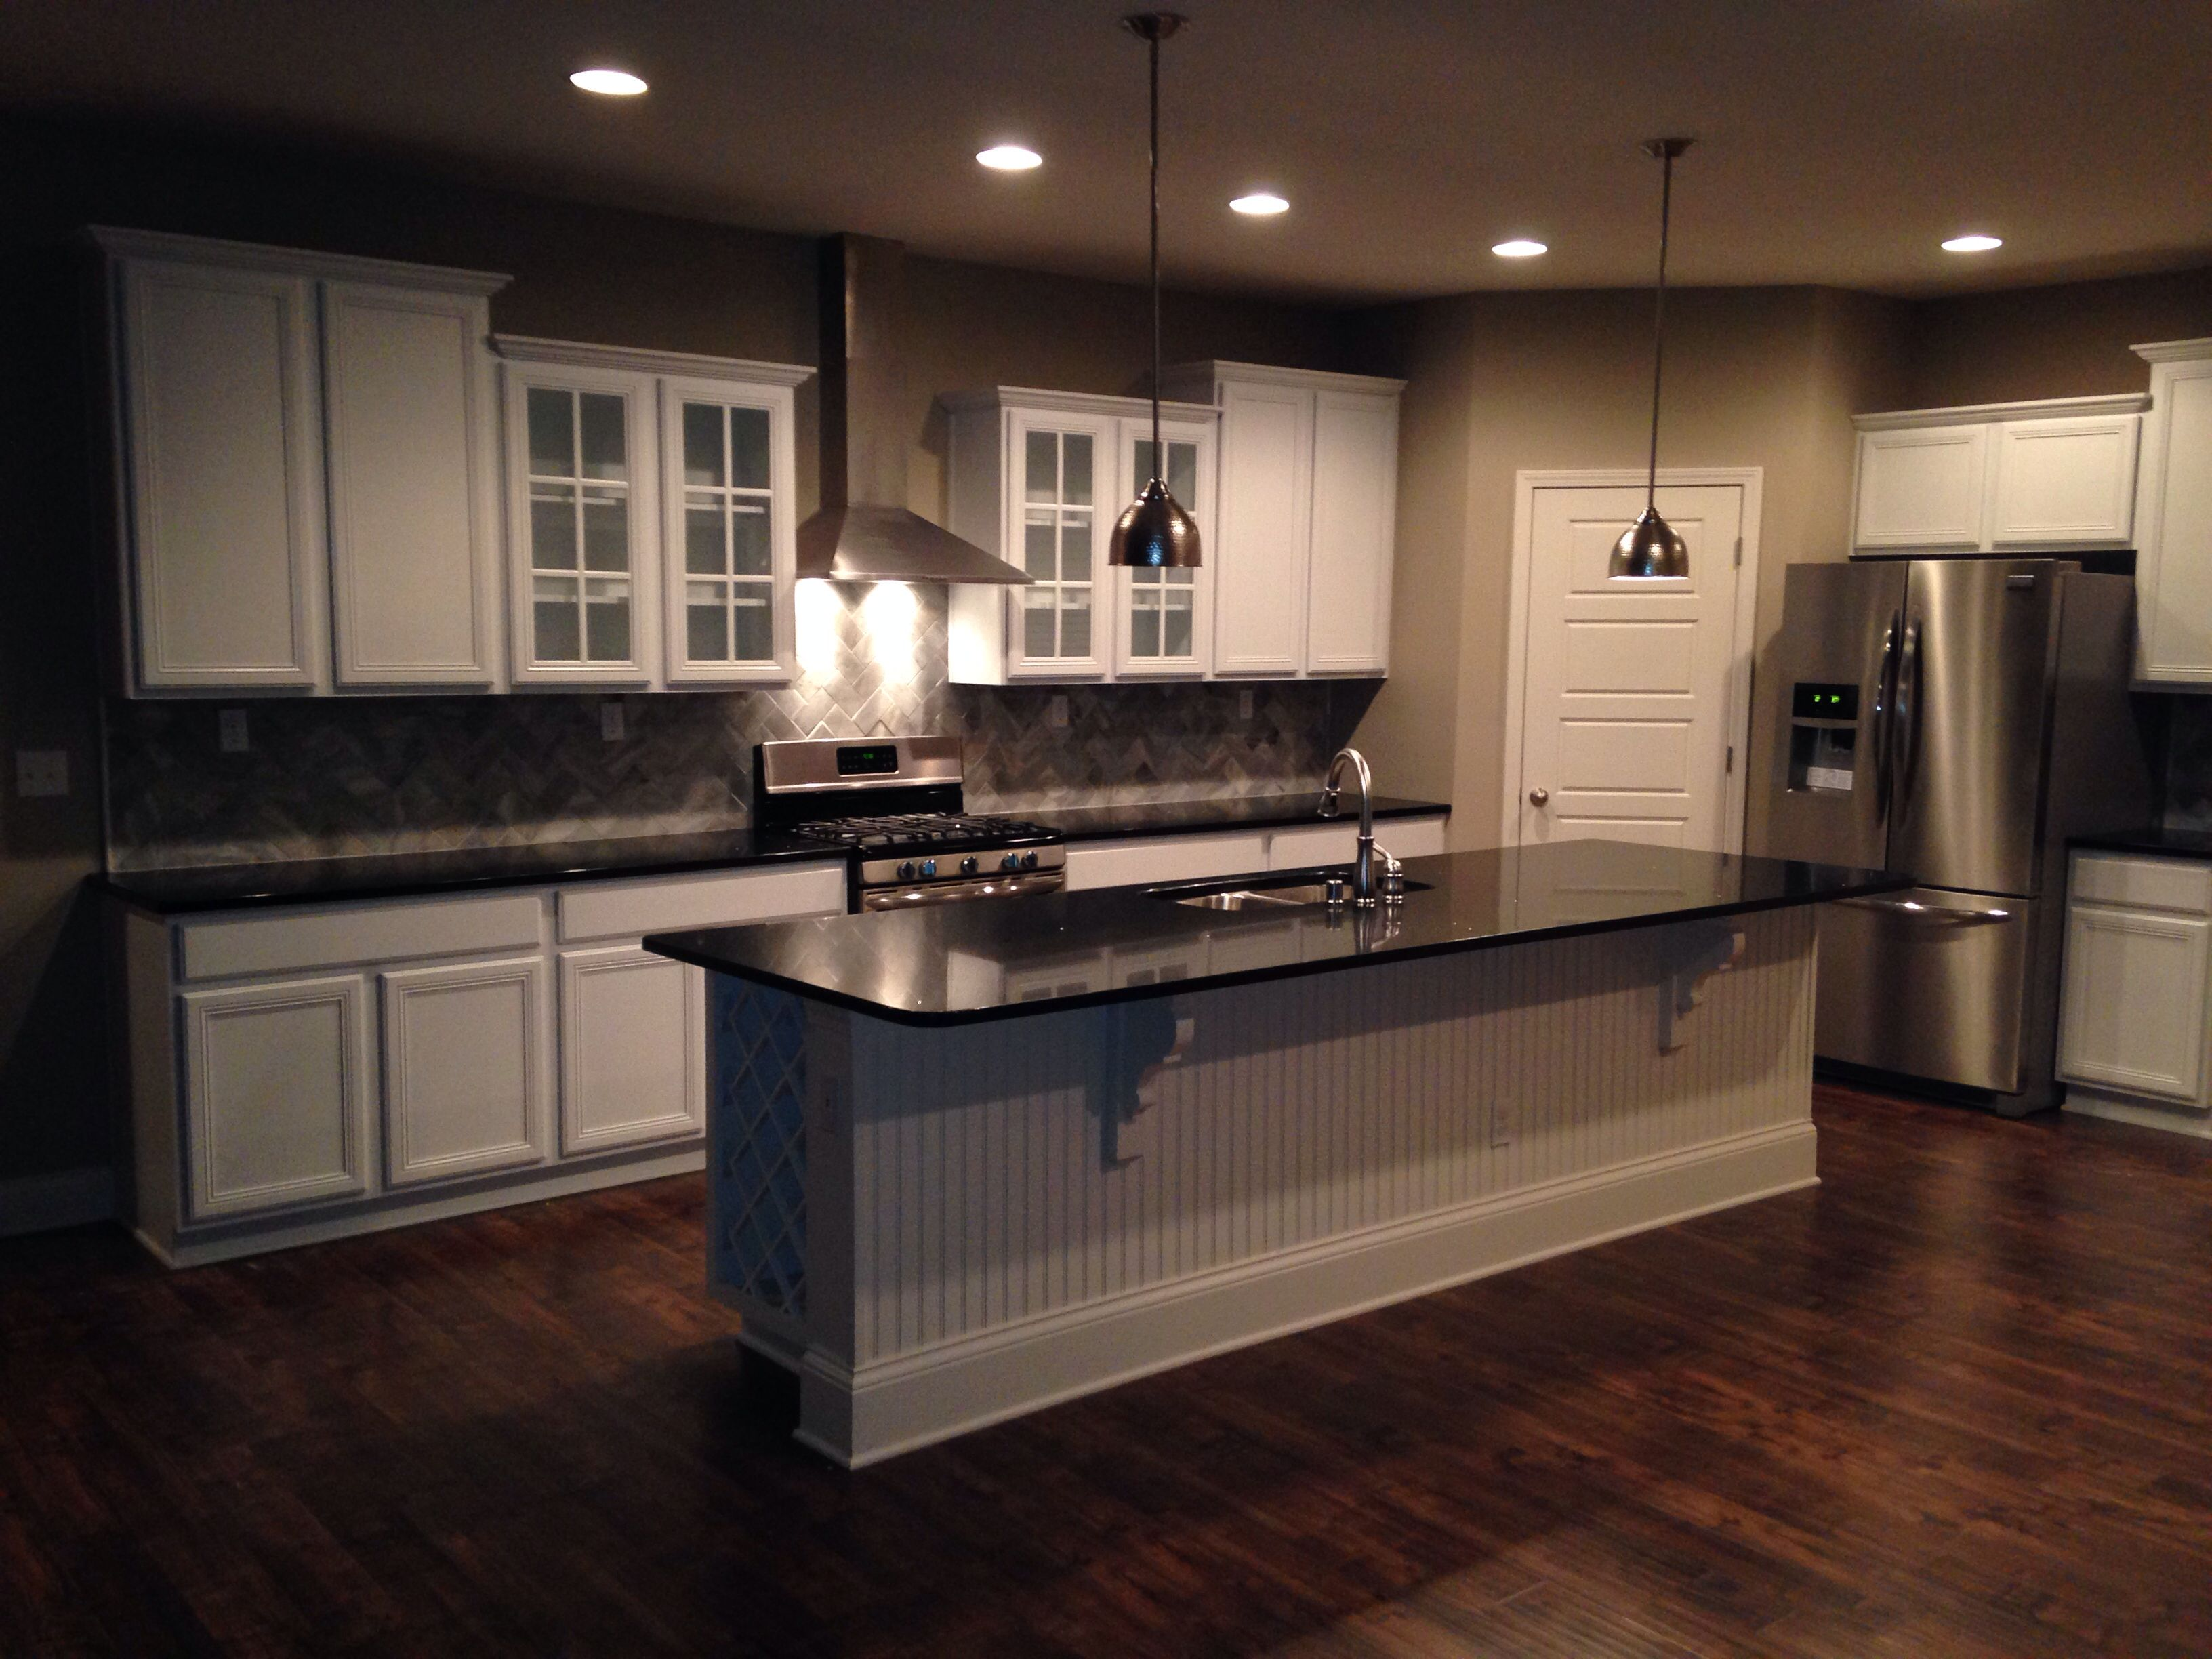 Albany Kitchen Built By Ball Homes. I Love The White Cabinets, Black Quartz  Counters